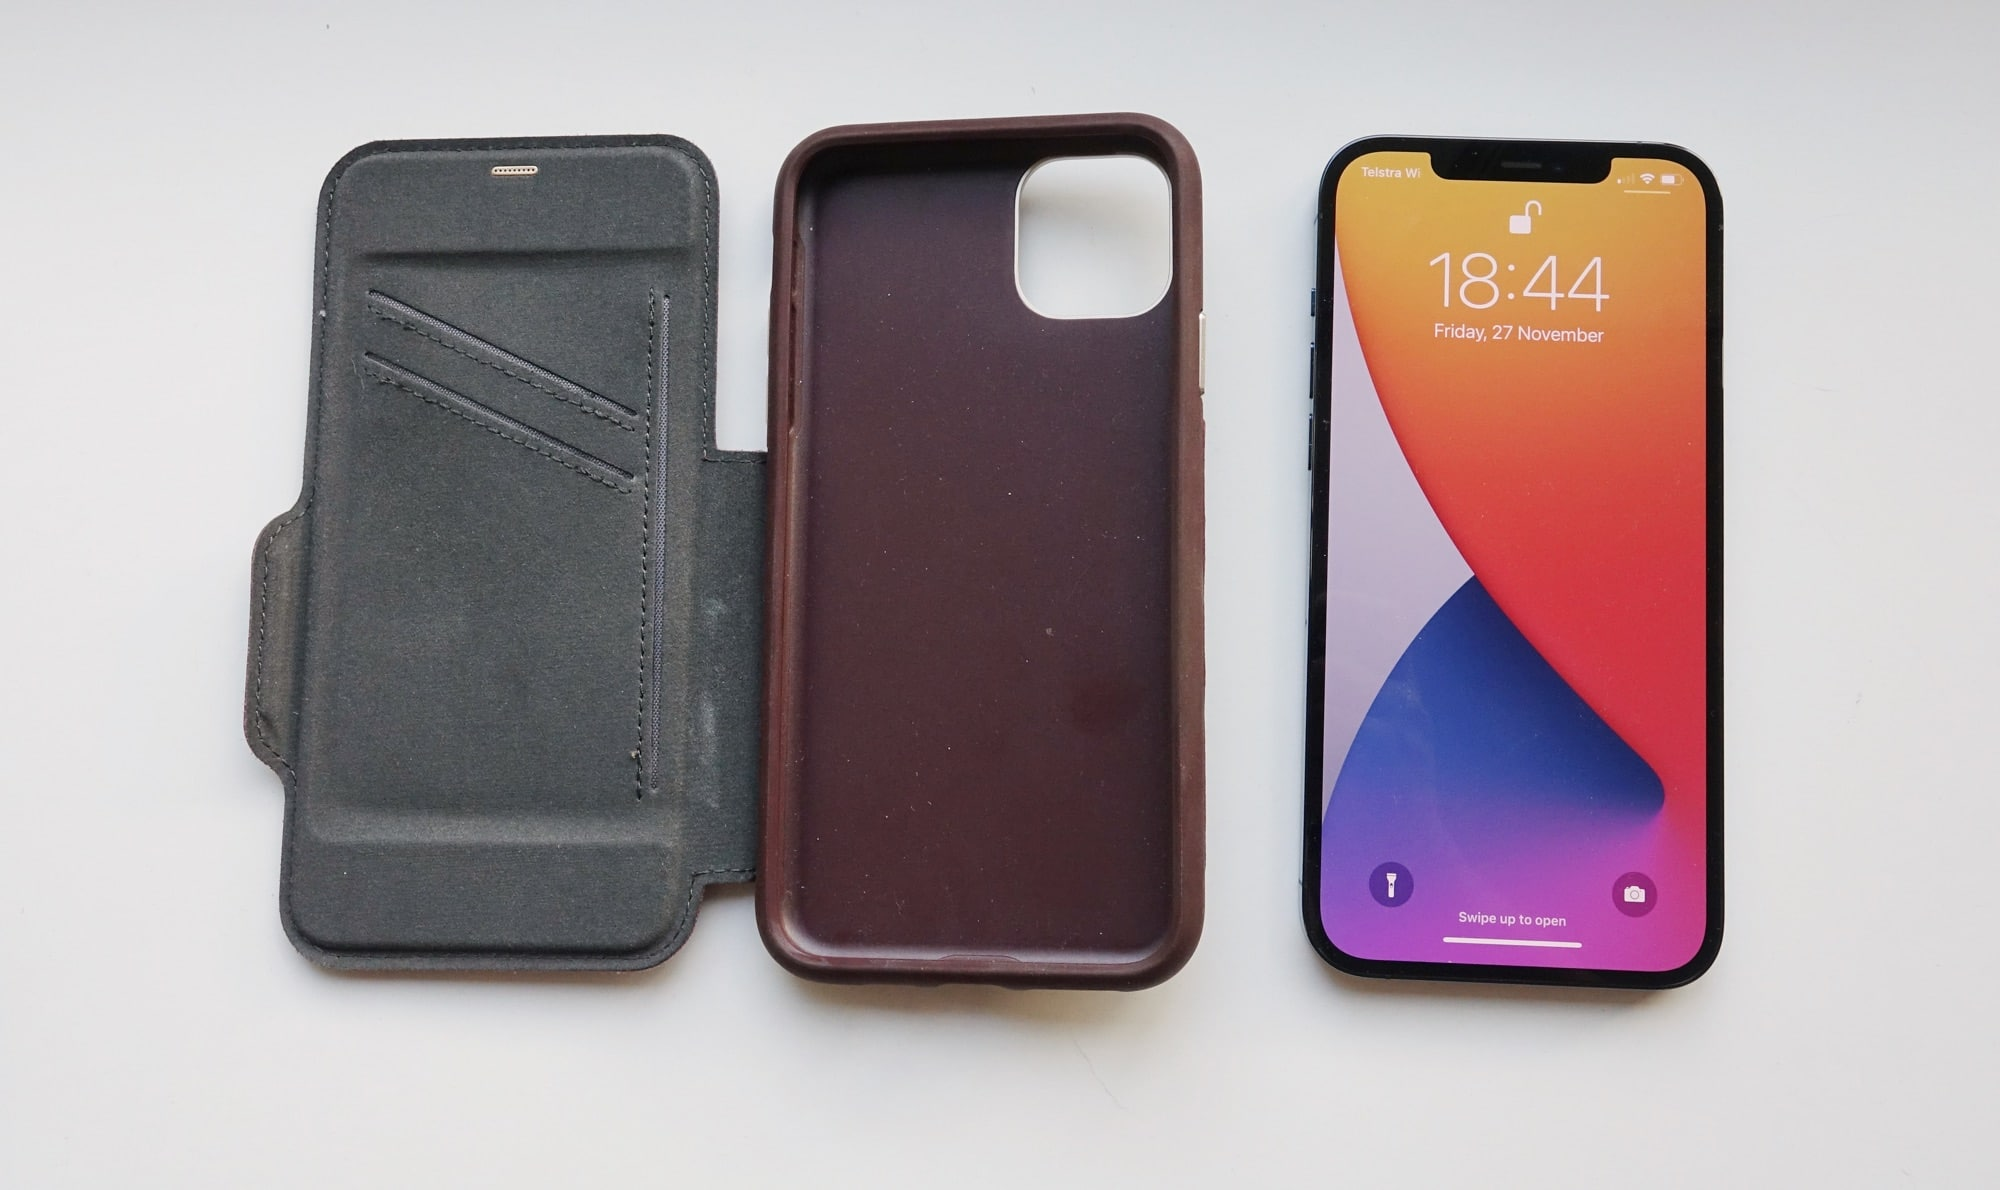 Can you put an iPhone 12 Pro Max into an iPhone 11 Pro Max case?